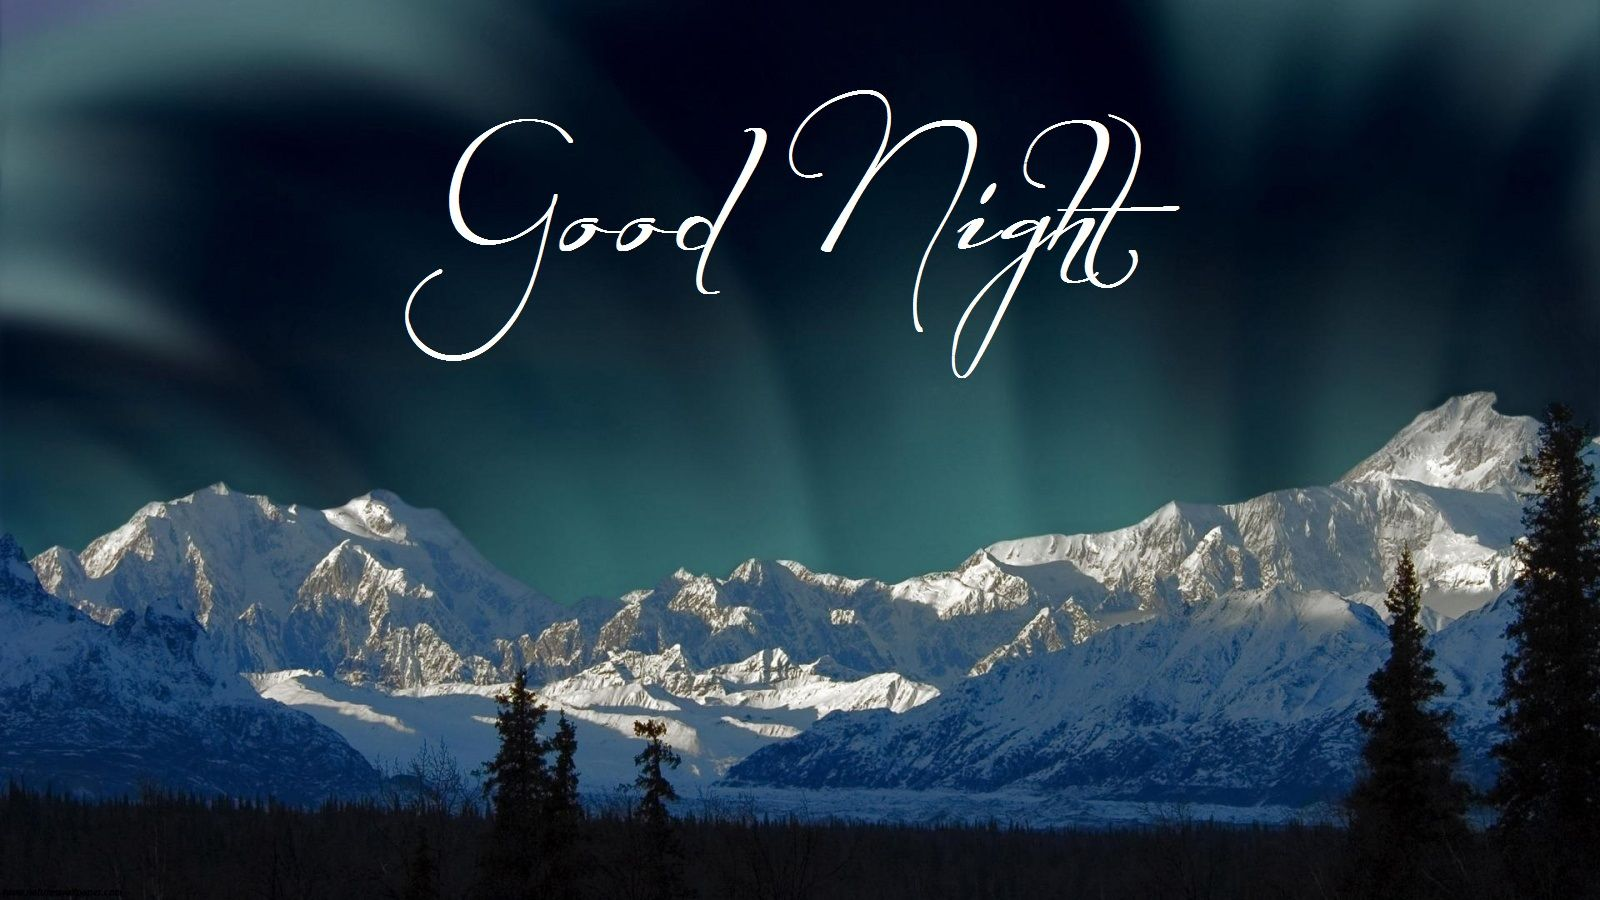 Wallpaper download good night - Good Night Wallpapers Hd With Quotes And Wishes